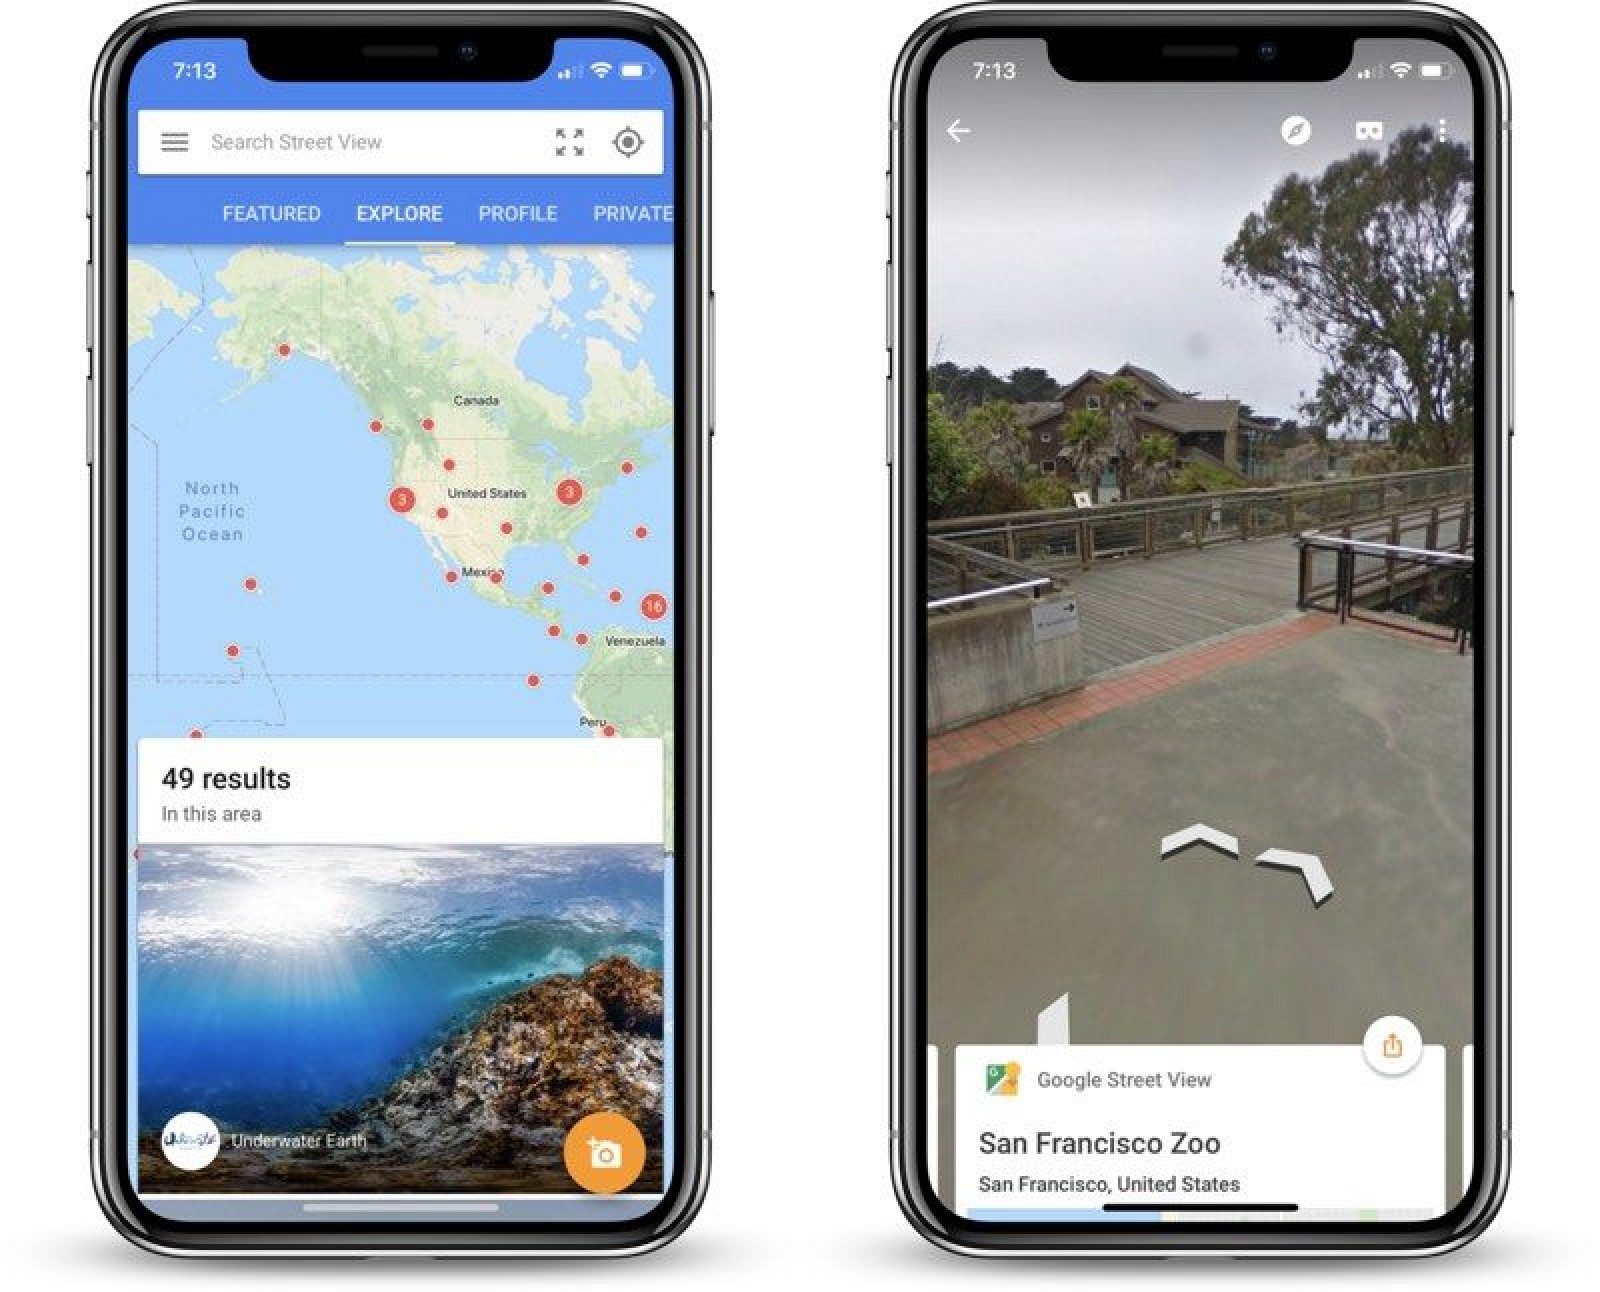 Another feature is support for Google Street View in the iPhone's Maps application.  Street View provides 360 degree panoramic views of major cities and their surrounding metropolitan areas using still photographs that have been stitched together.  Google and T-Mobile recently highlighted support...